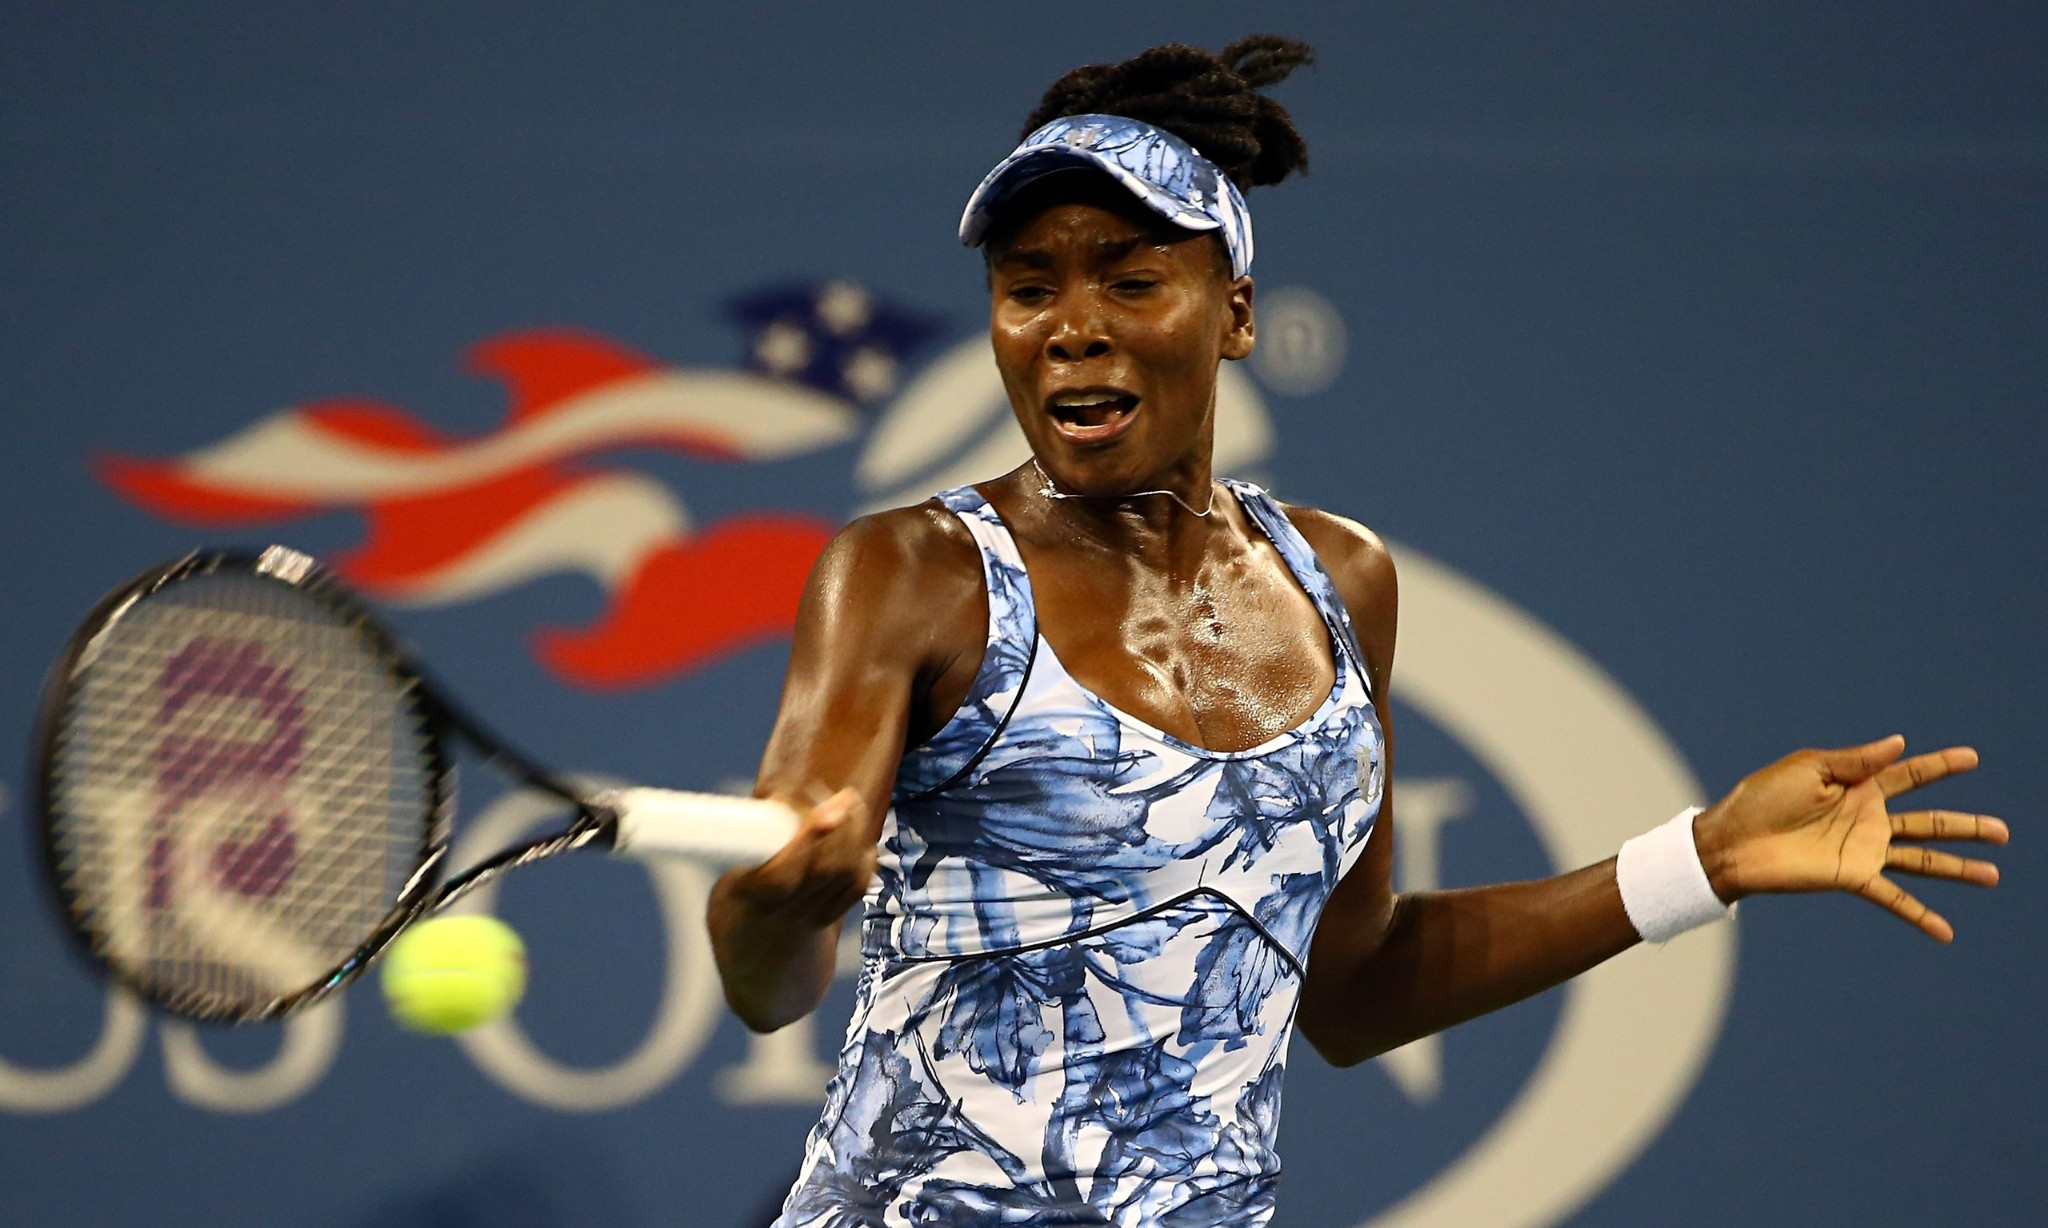 US Open 2014: Venus Williams and Stan Wawrinka ease into third round